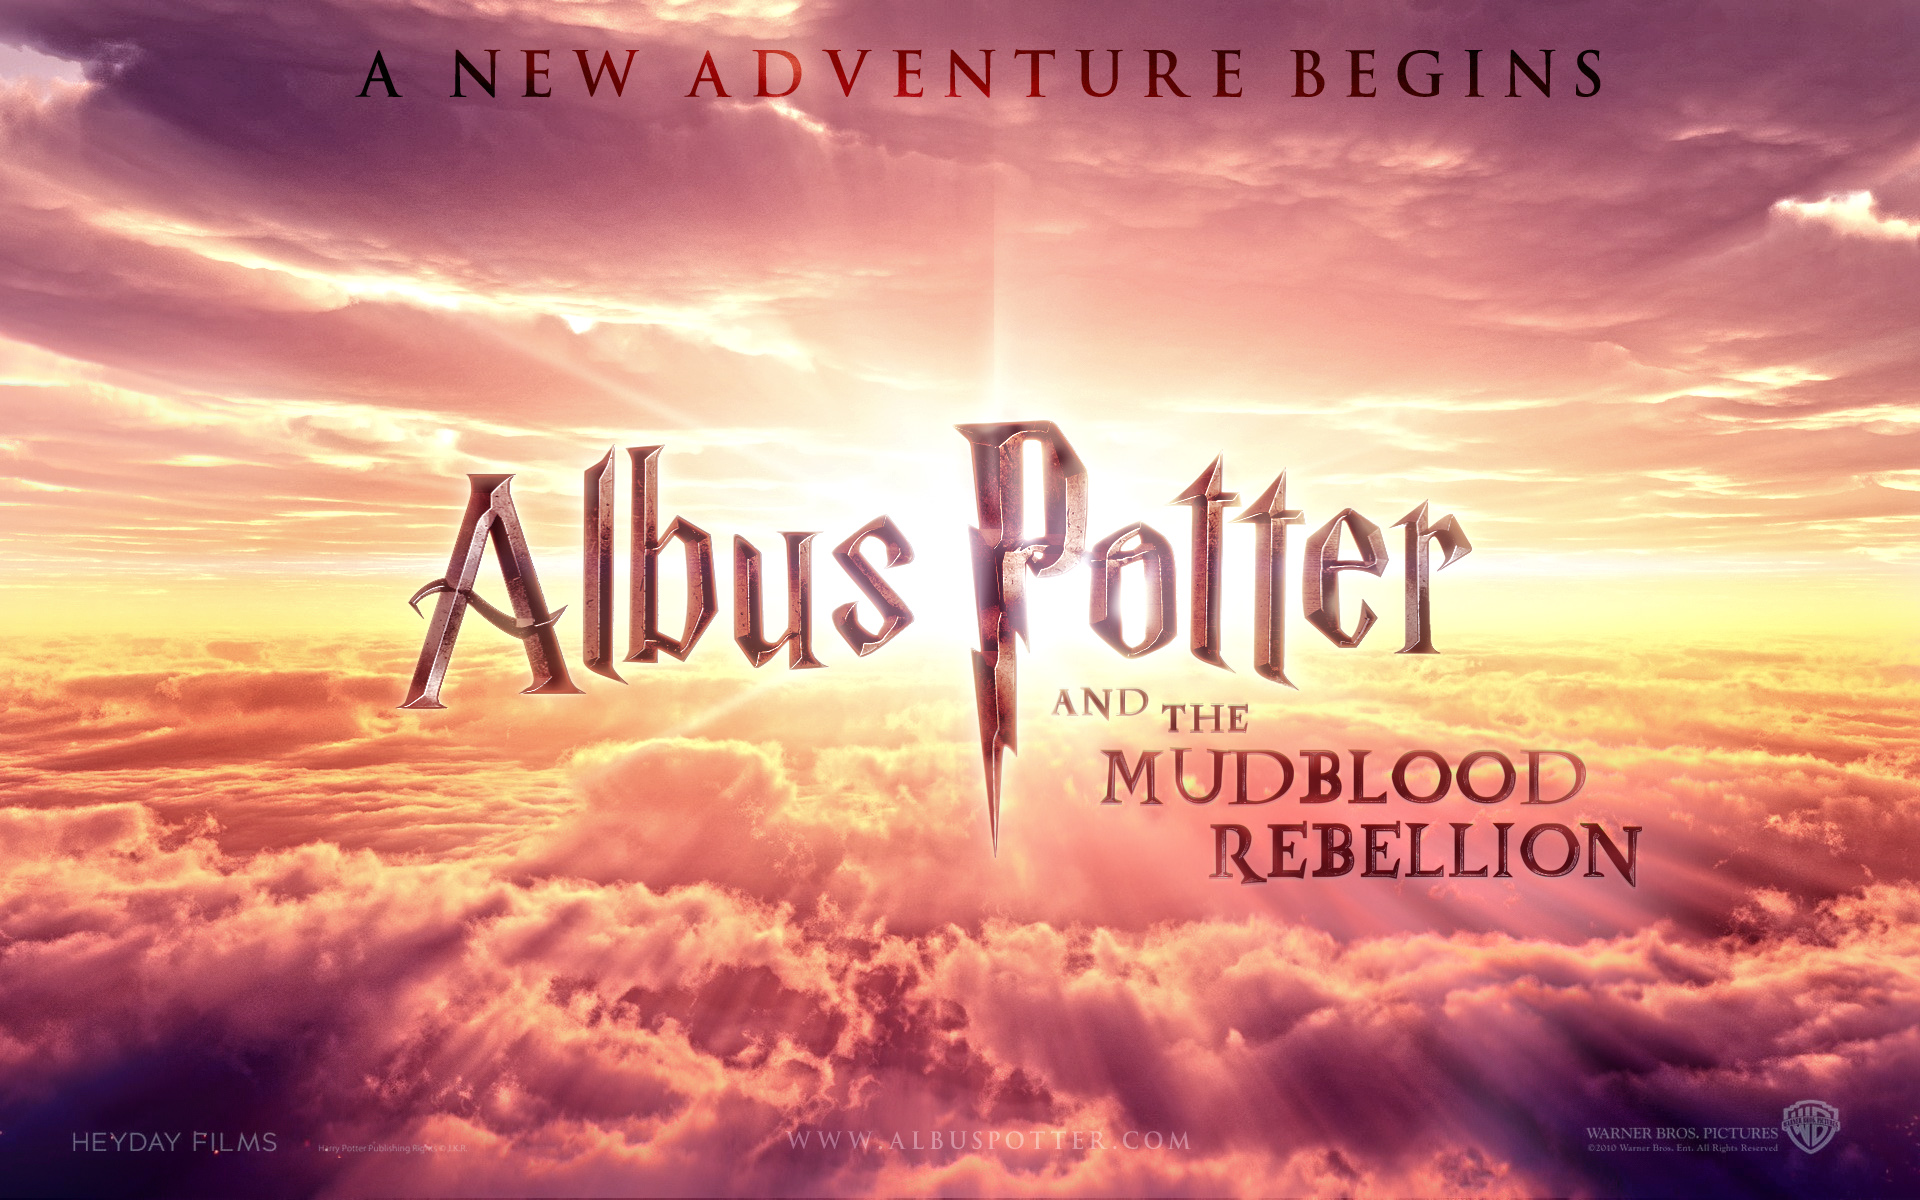 Albus Potter and the Mudblood Rebellion